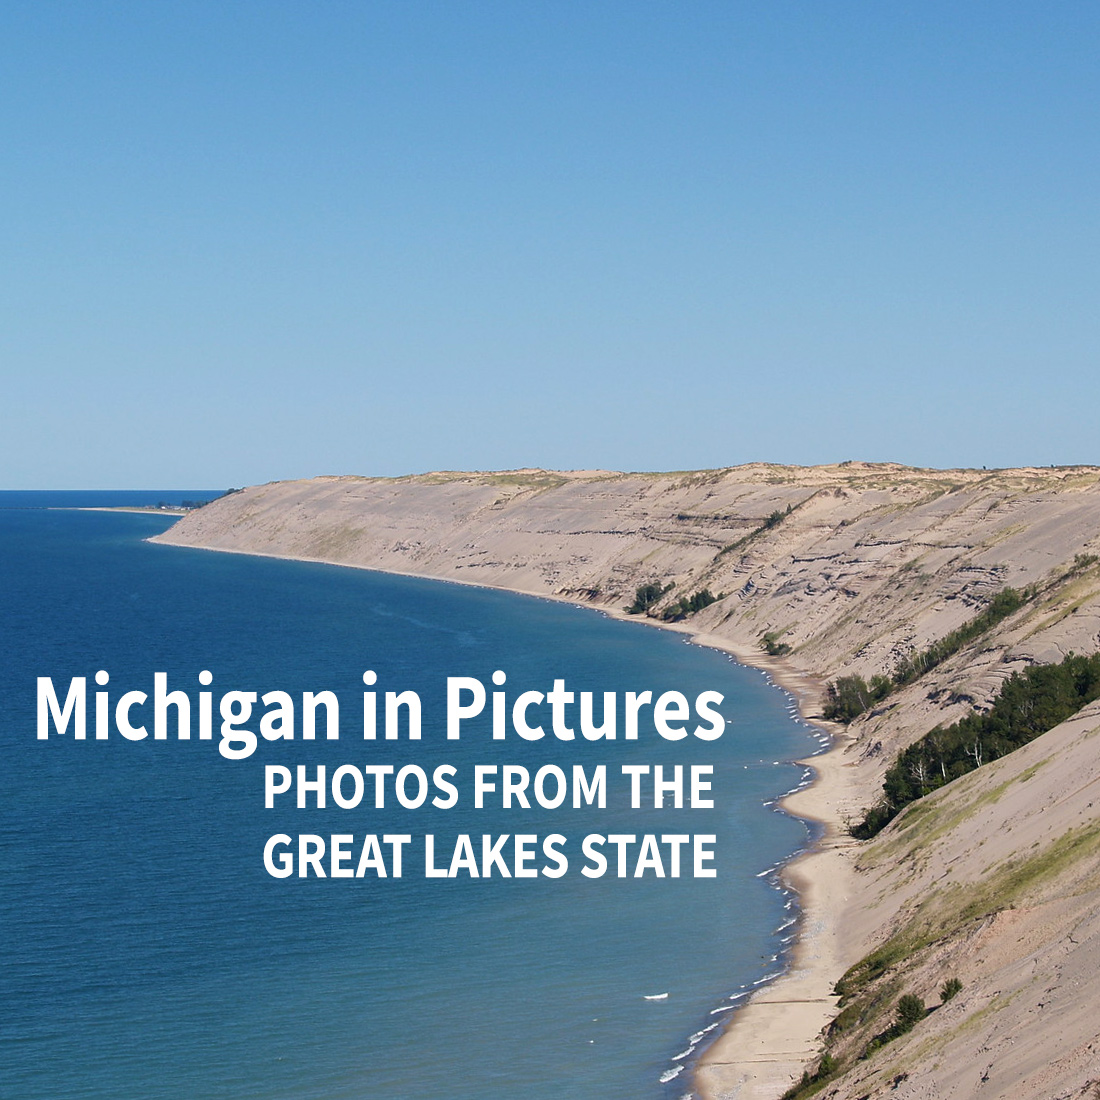 Michigan in Pictures - Photos from the Great Lakes State